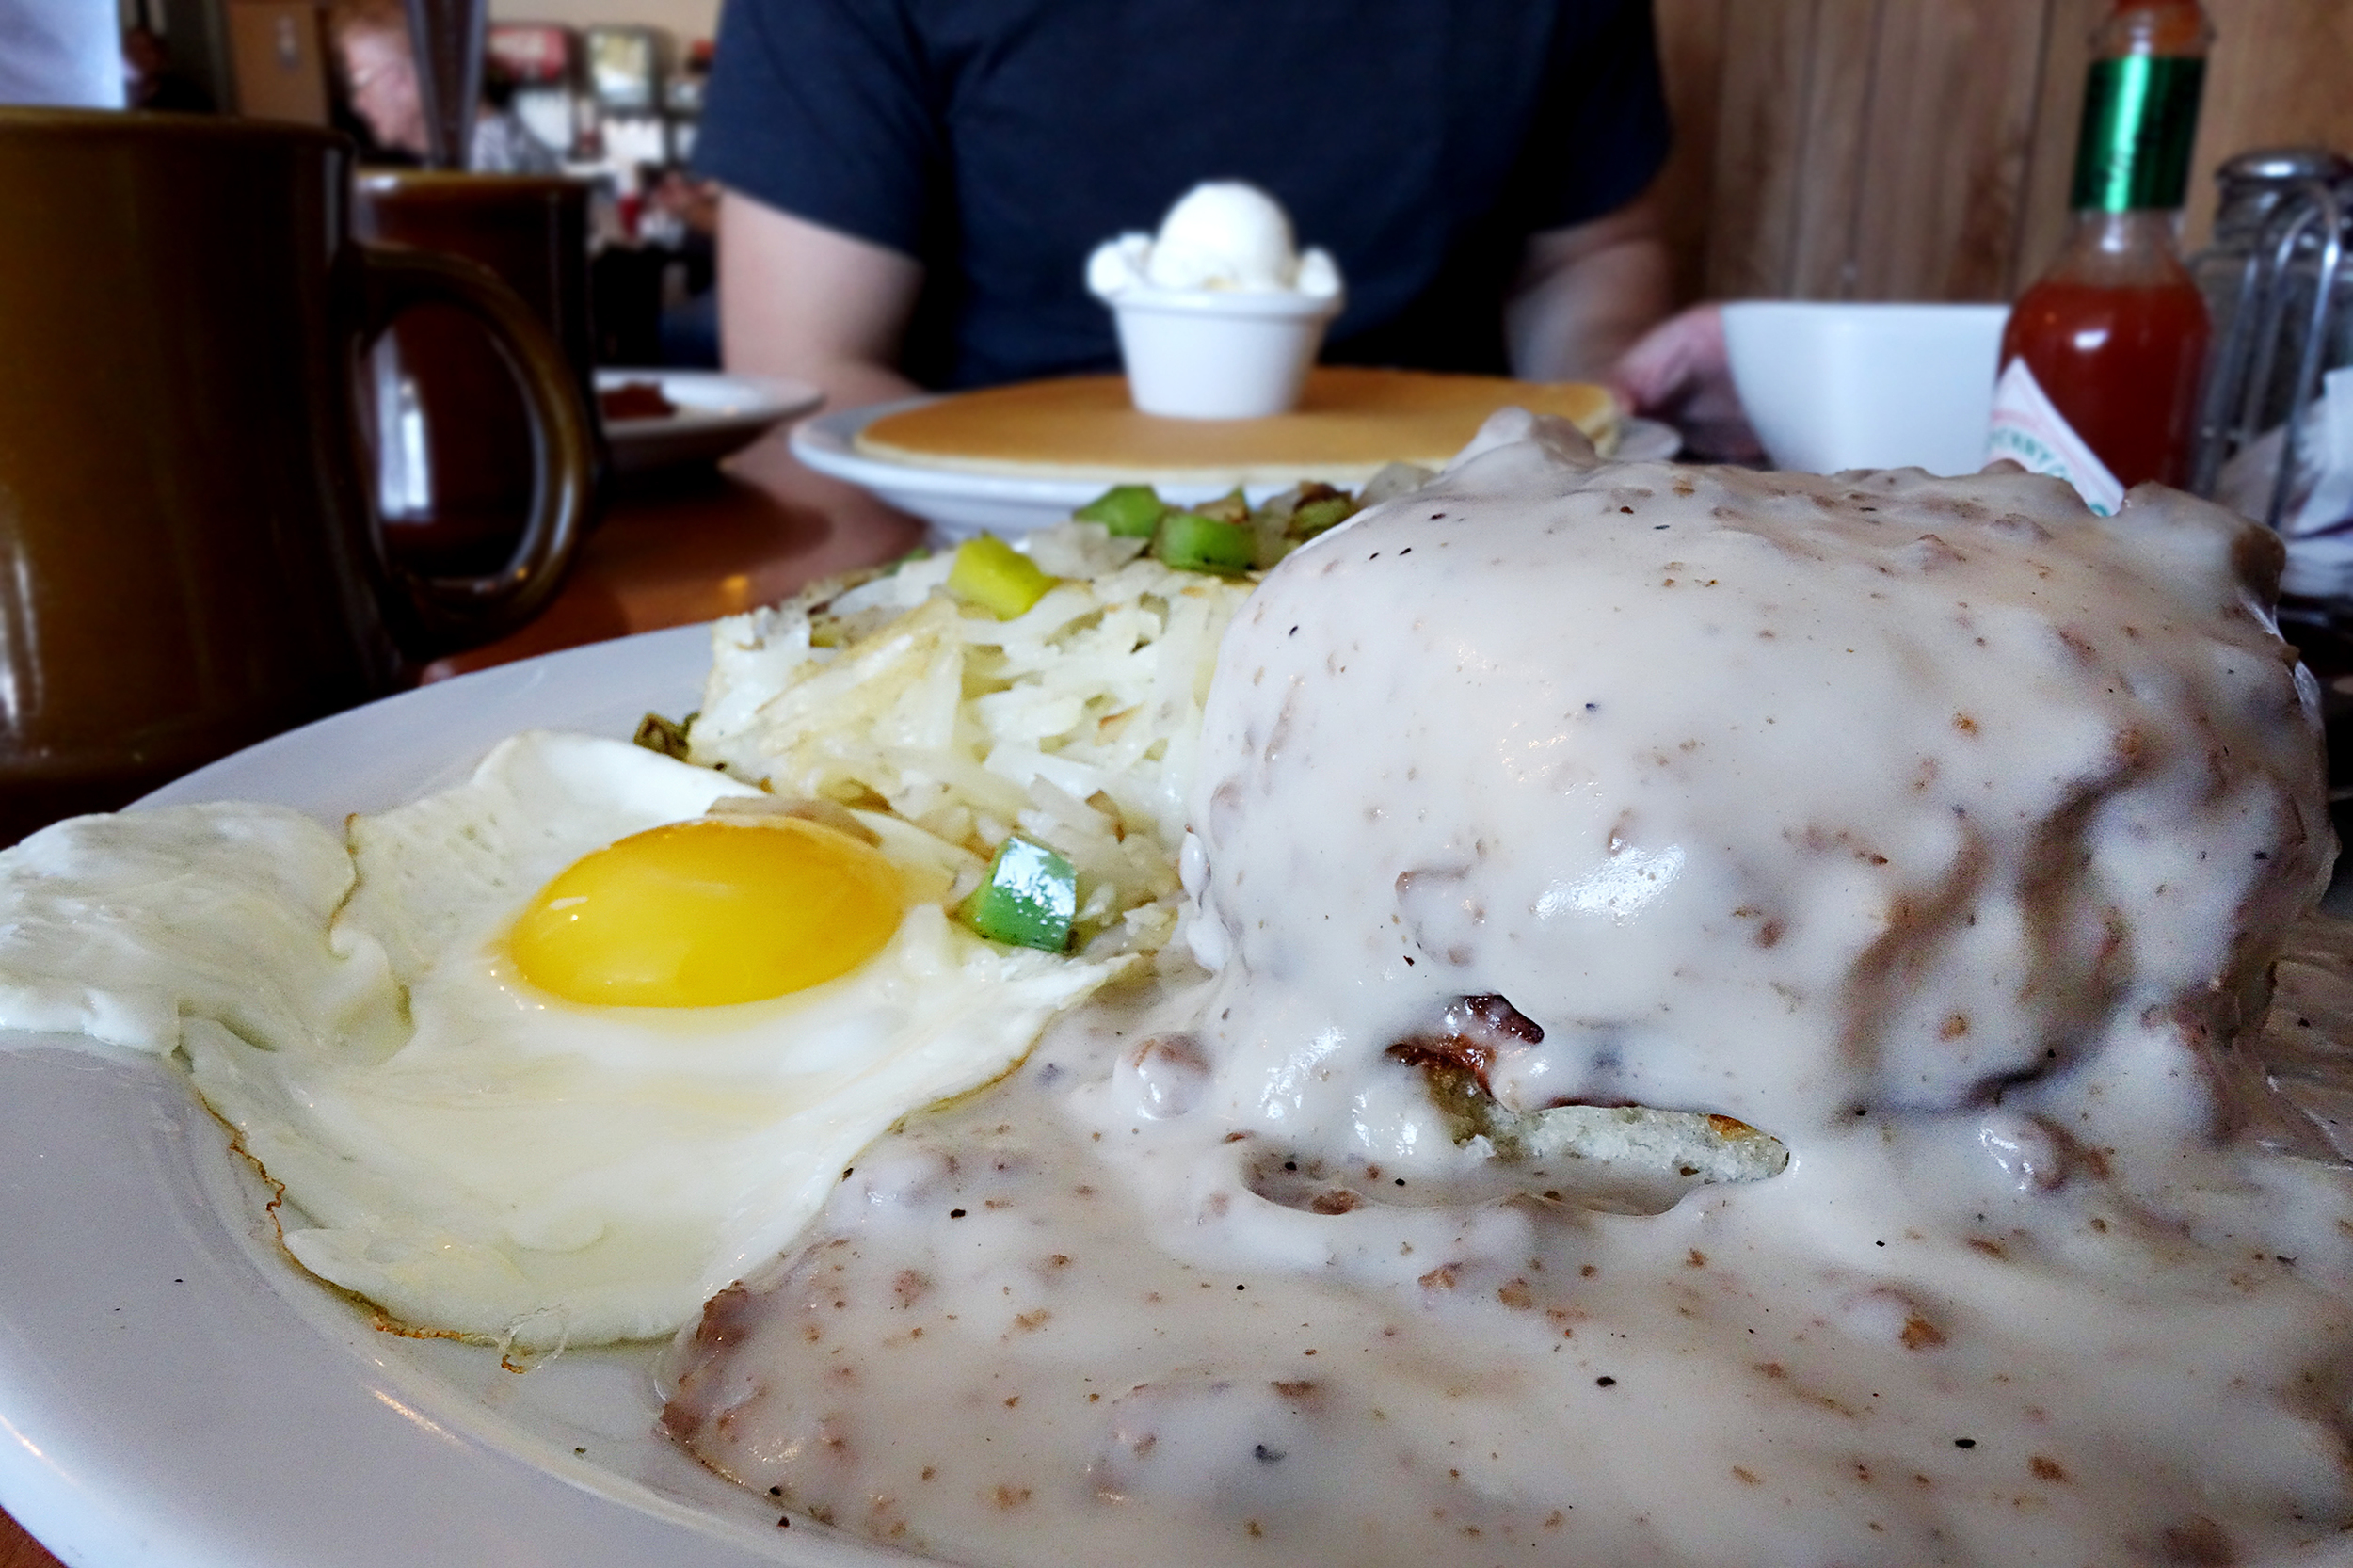 Pop's Country Breakfast: Sausage Biscuit and Sausage Gravy. Served with Irish potatoes and egg.